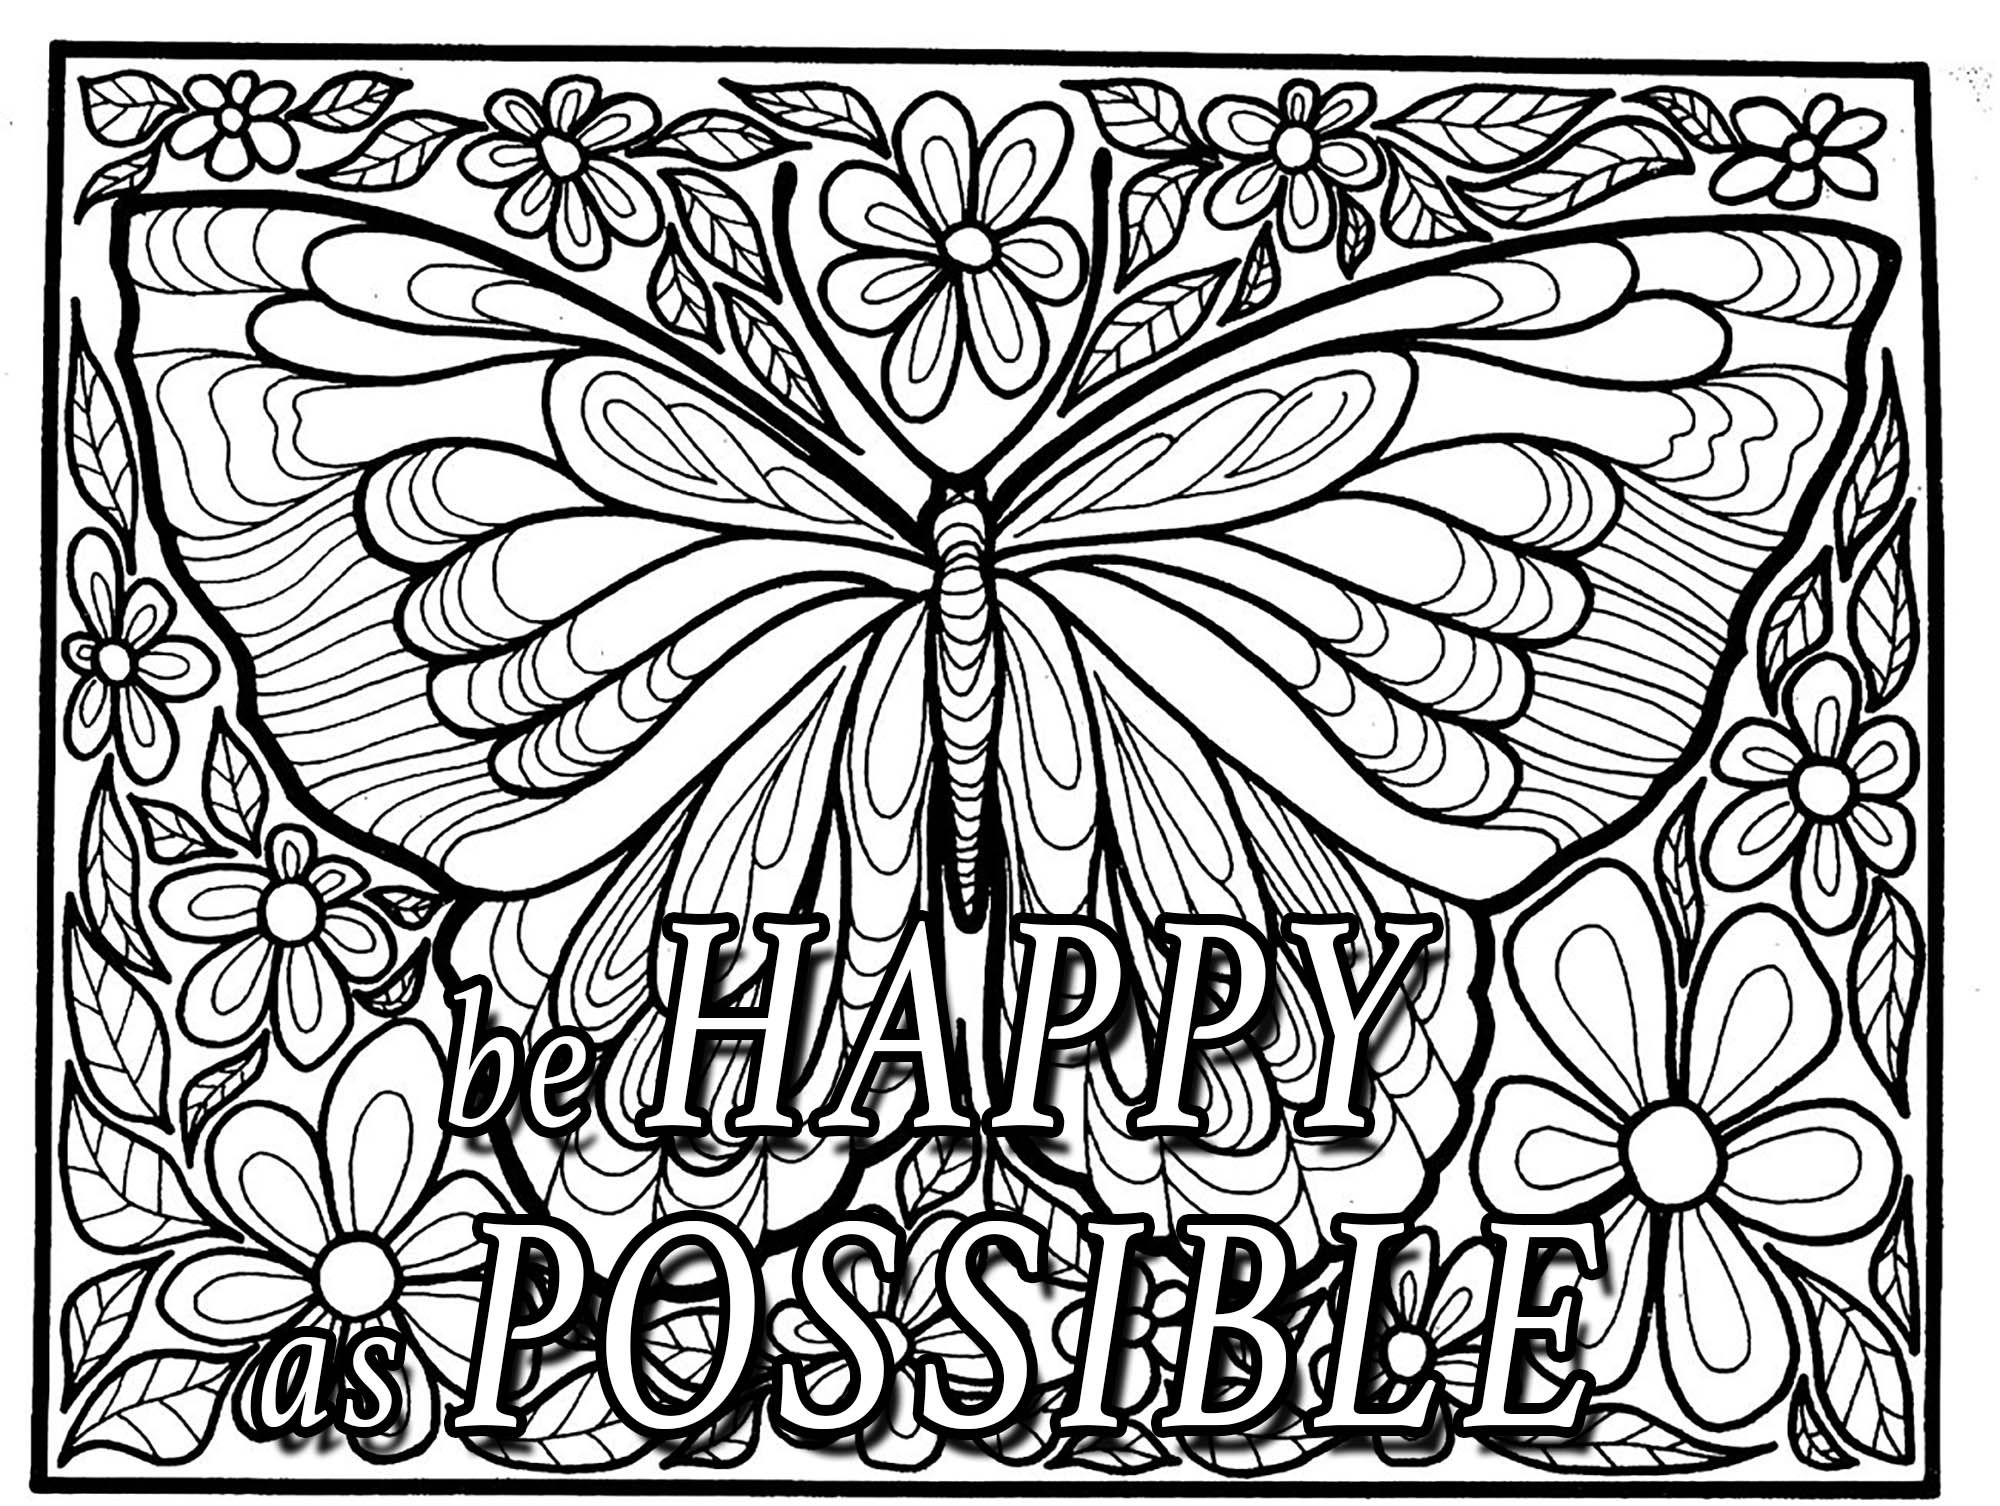 Pin By Kelly Marie Ball On Kolor Me Quotes Butterfly Coloring Page Insect Coloring Pages Animal Coloring Pages